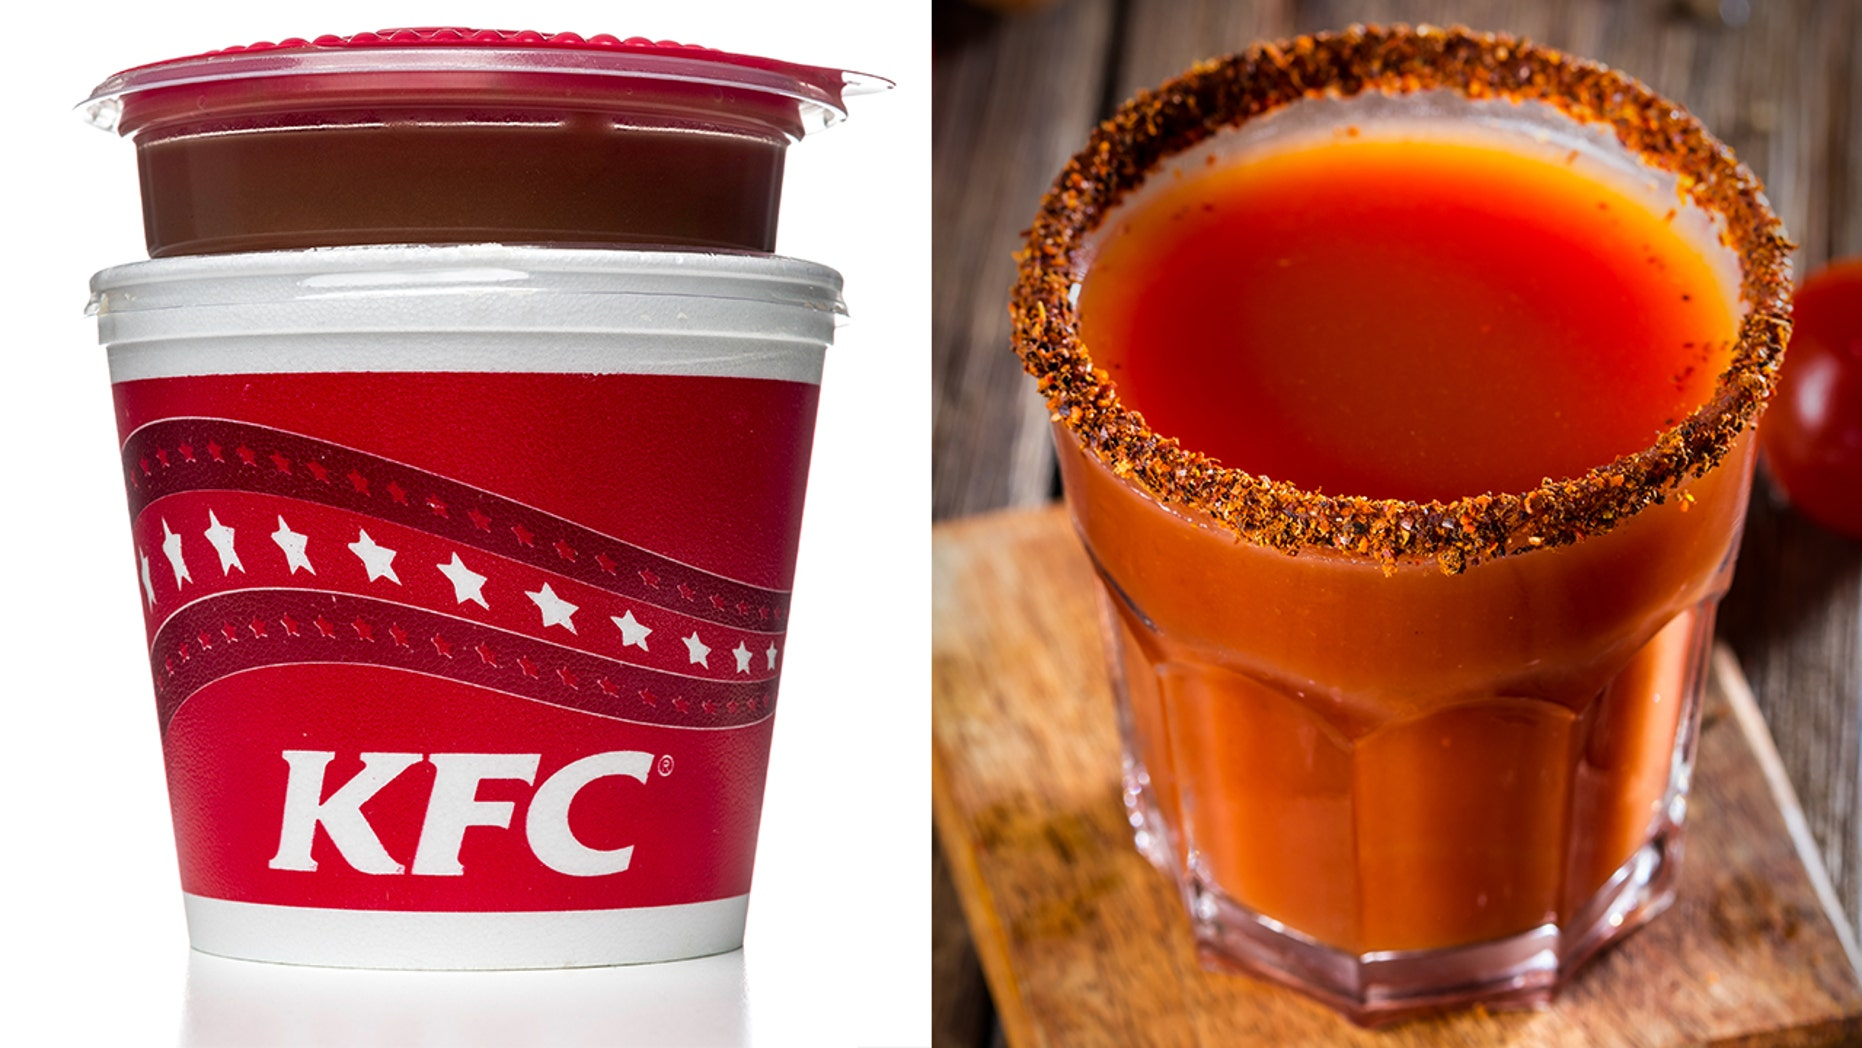 KFC is promoting gravy-infused cocktails for the adventurous drinker.